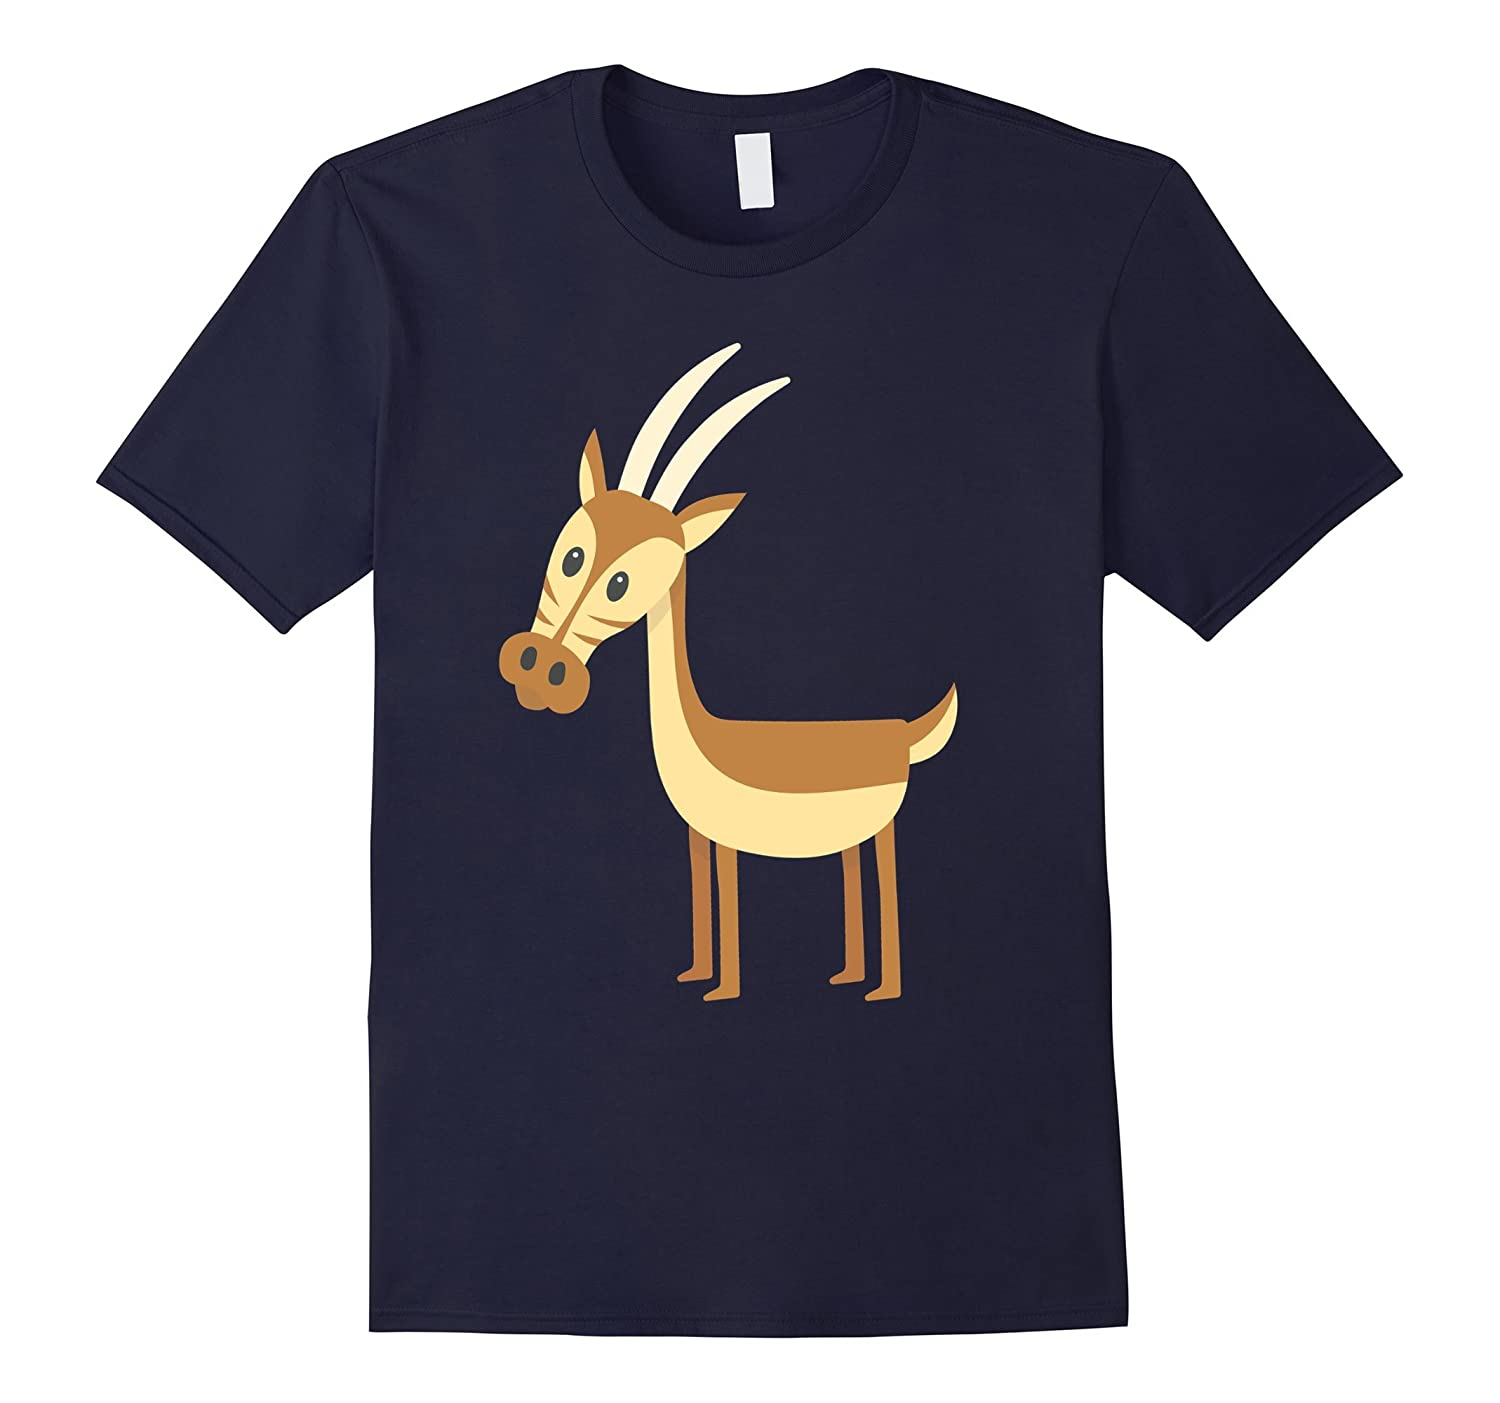 Antelope T Shirt Tshirt for men women boys girls kids-BN